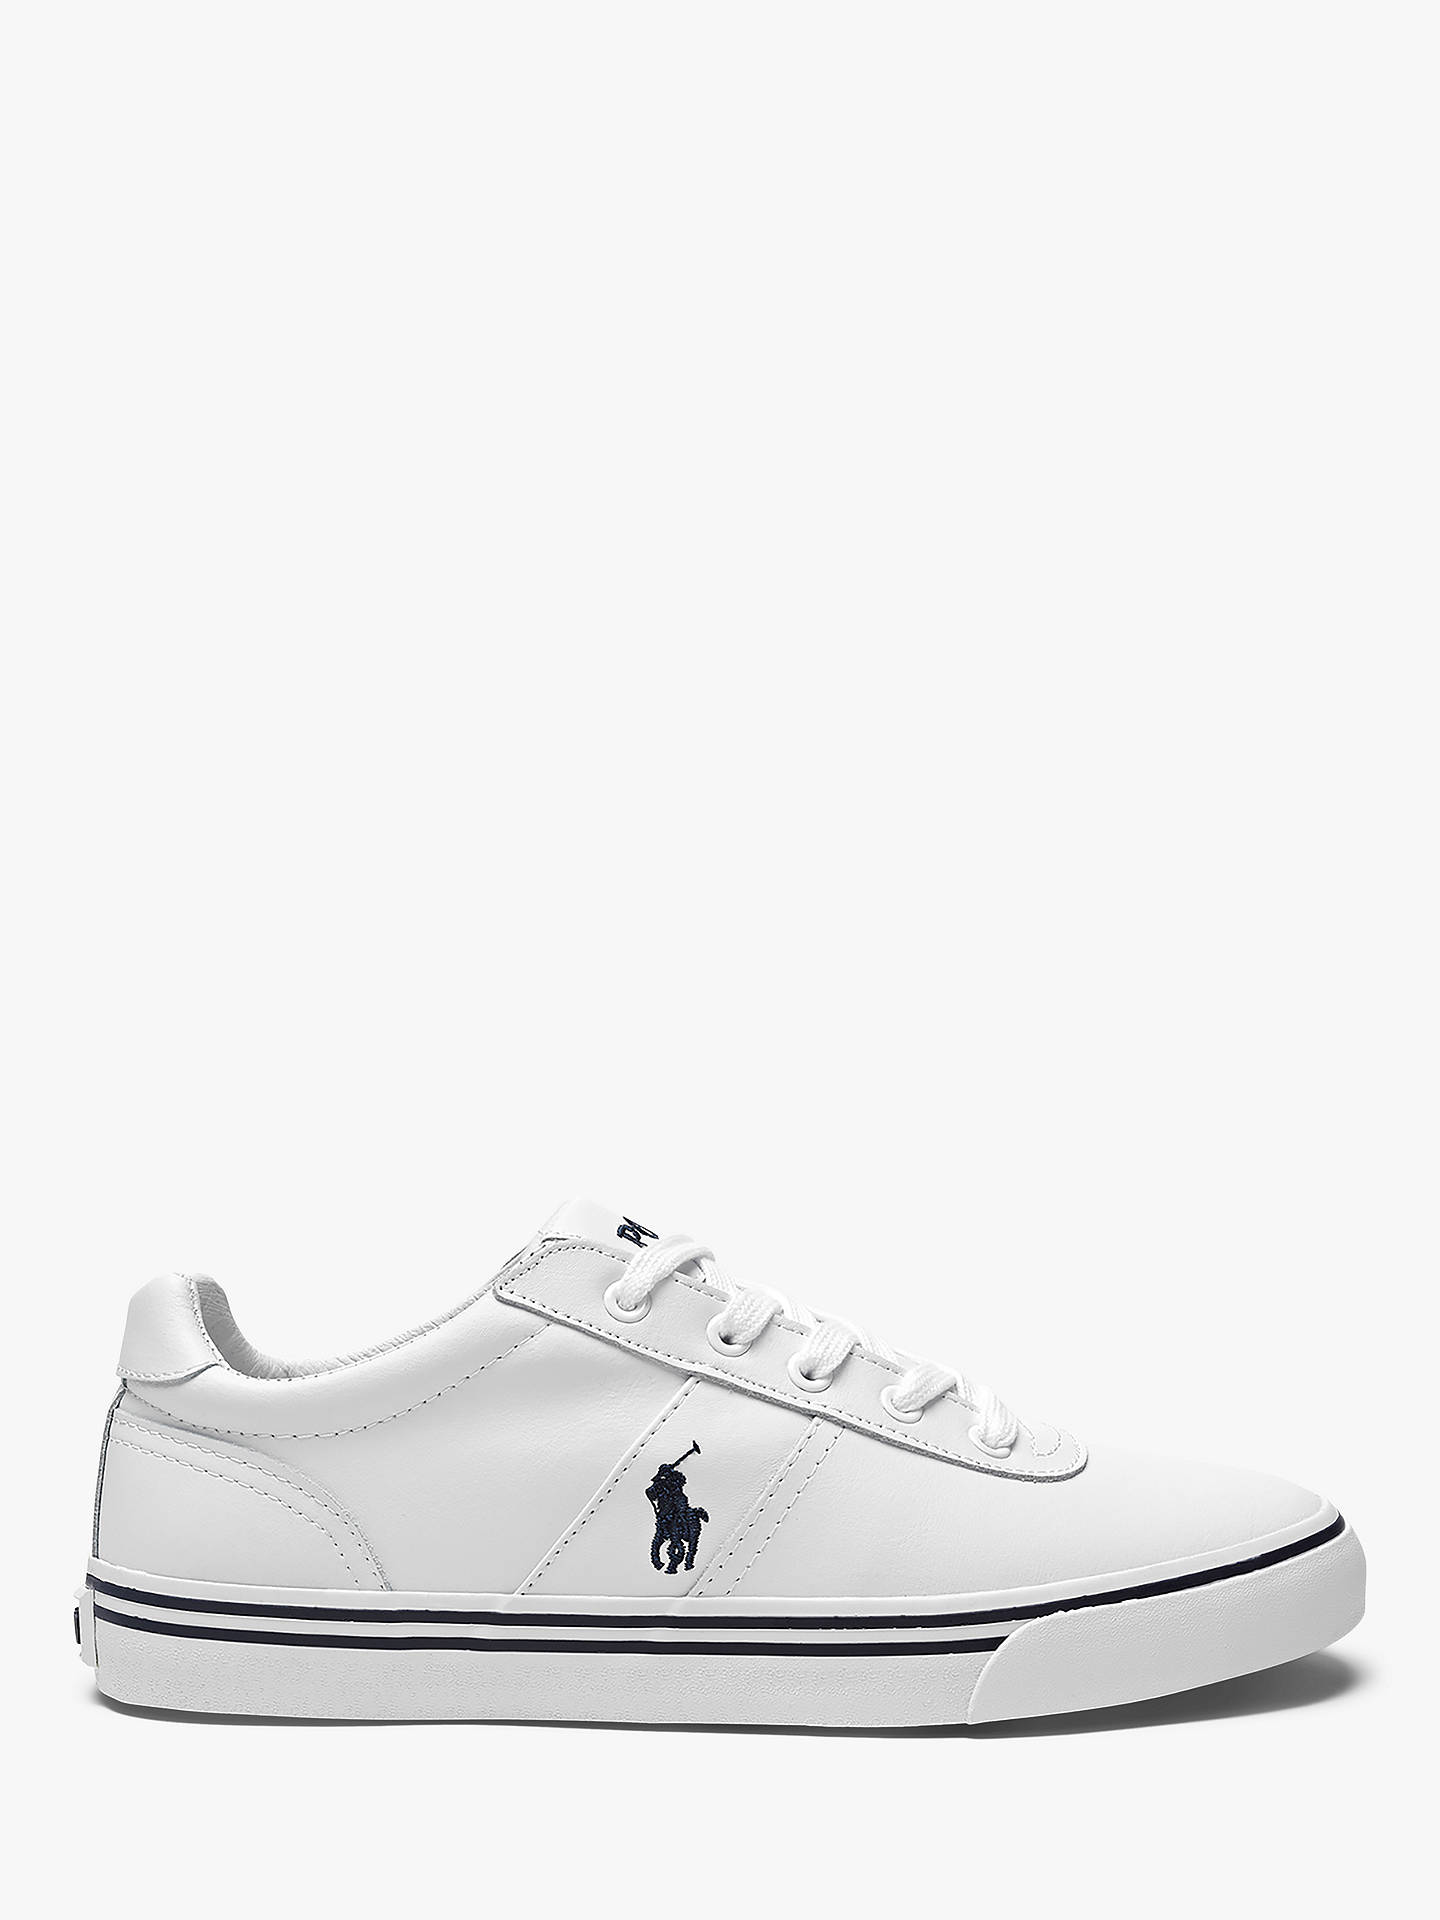 Lauren At Polo Lewis Ralph Hanford Leather TrainersWhite John W9eEDYbIH2